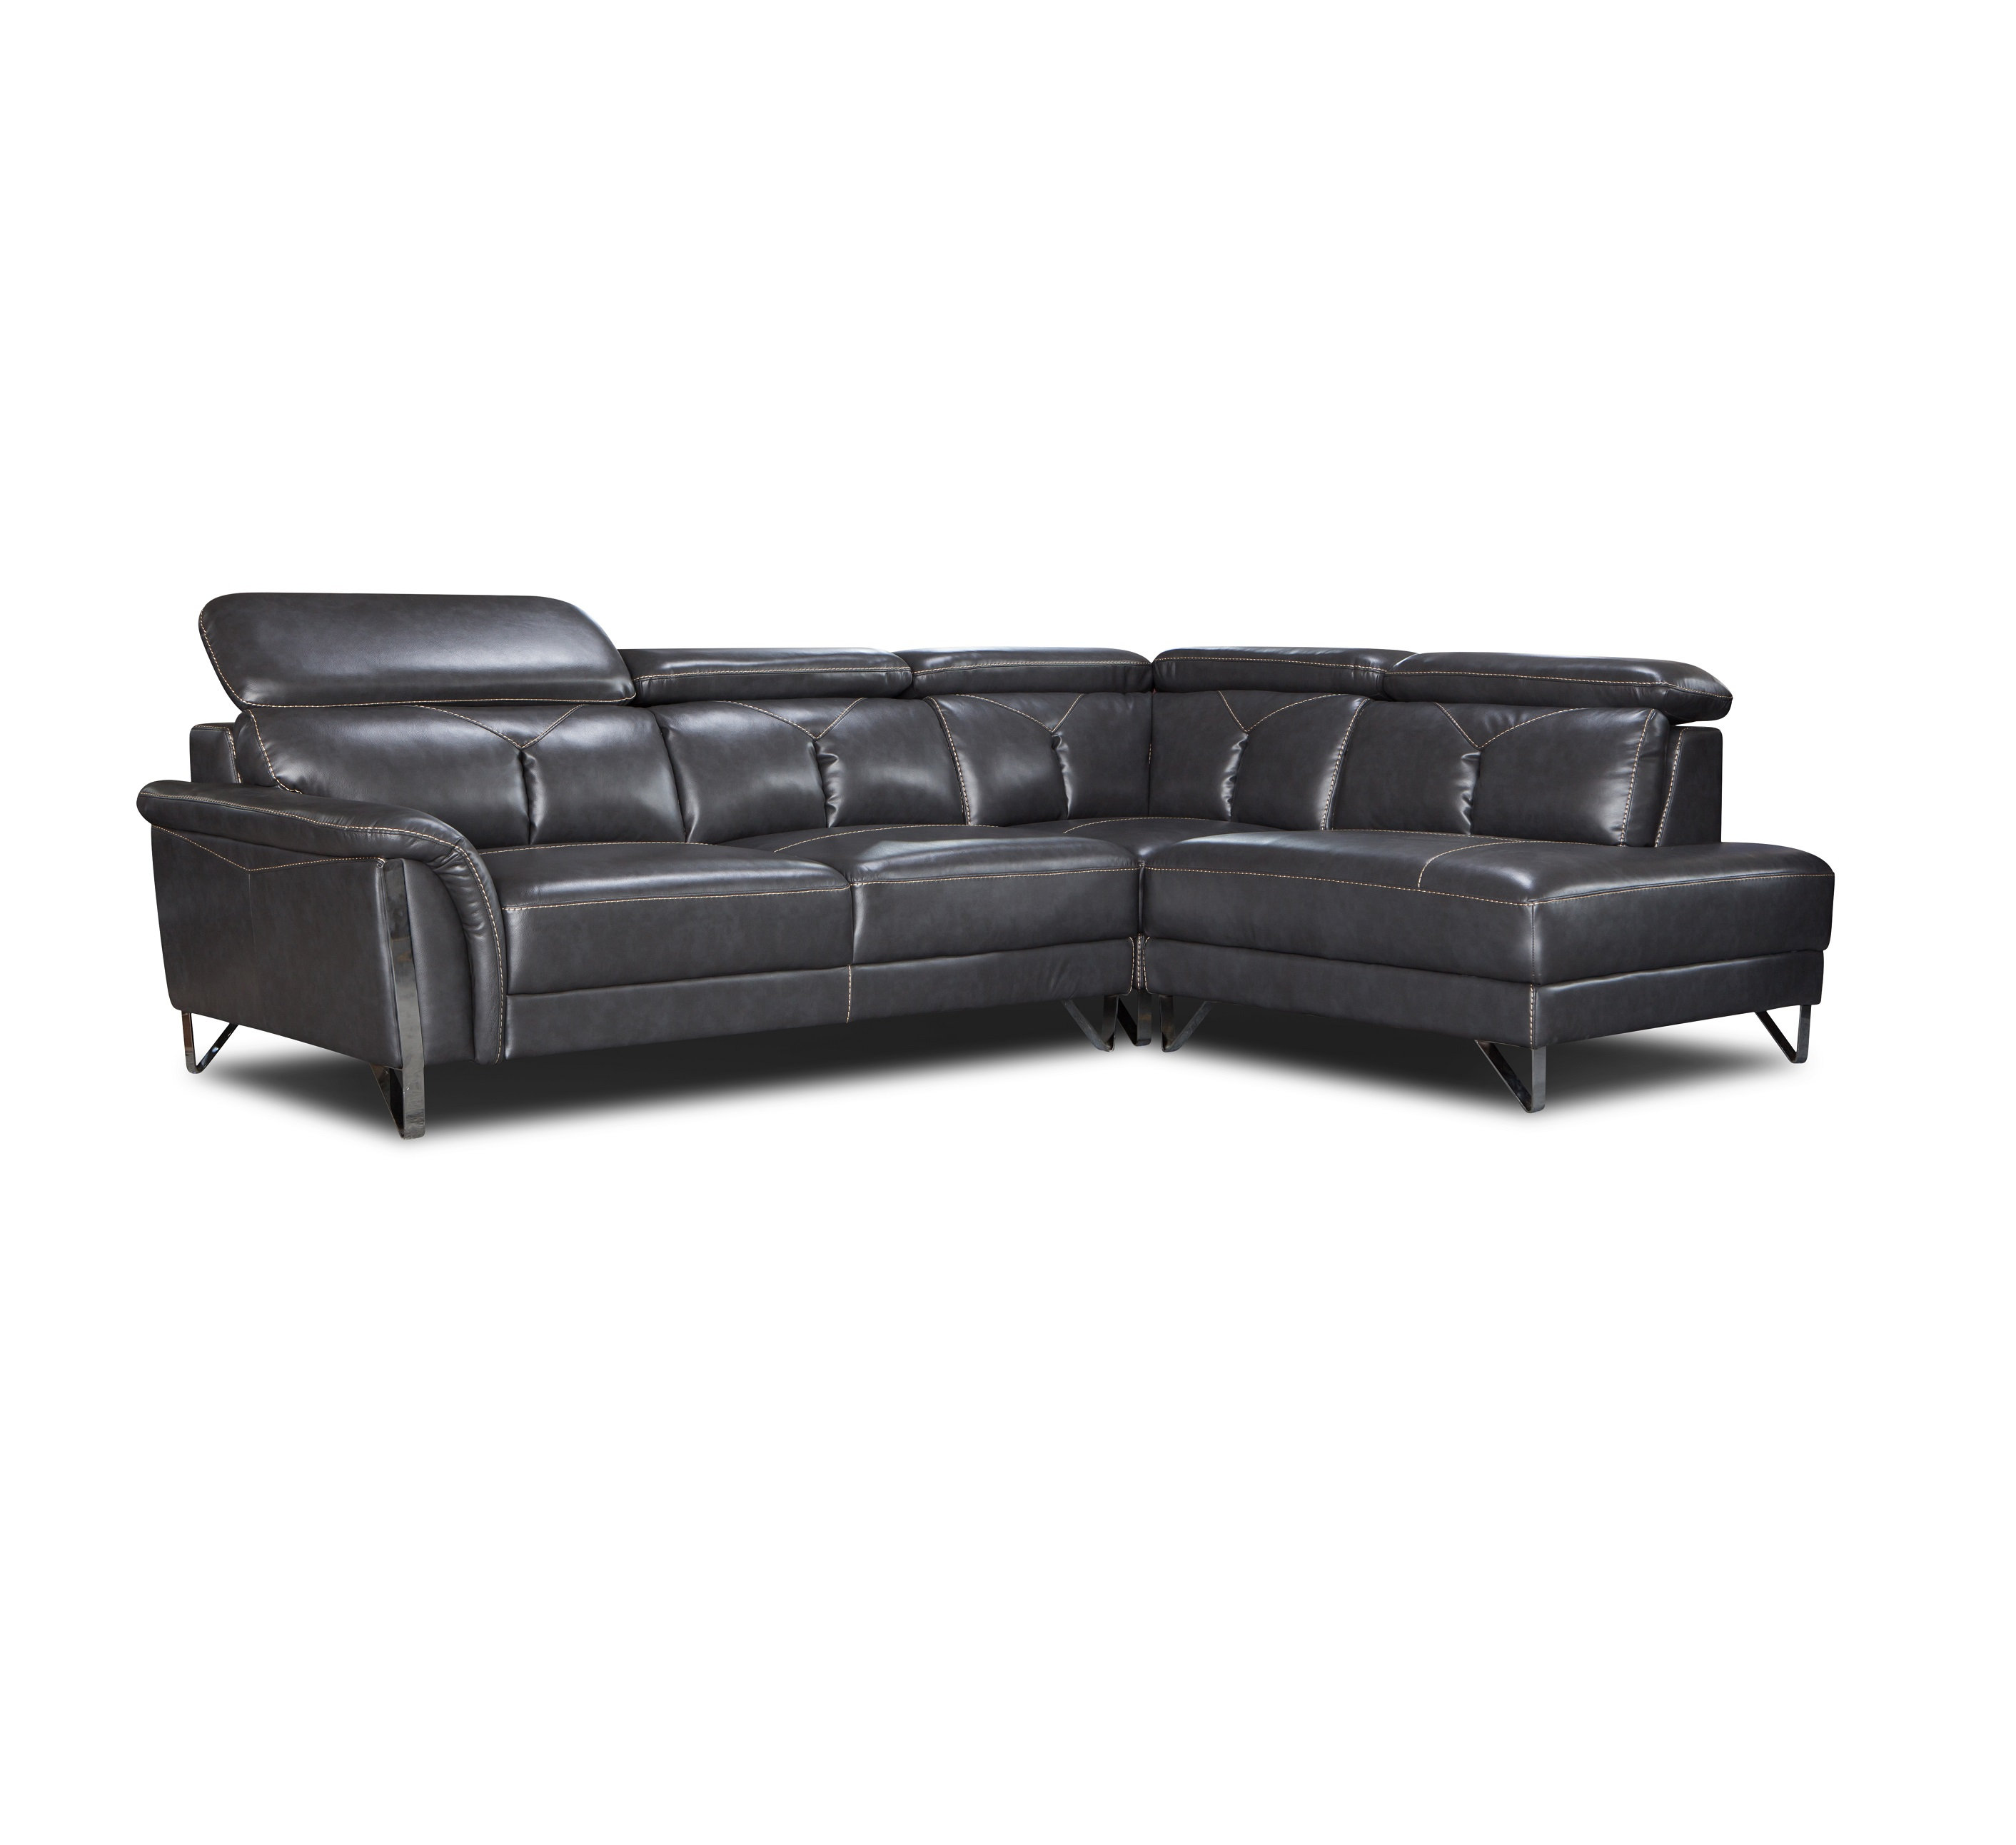 Modern Furniture Recliner Leather Sectional Sofa With Cup Holder Buy Sectional Sofa Leather